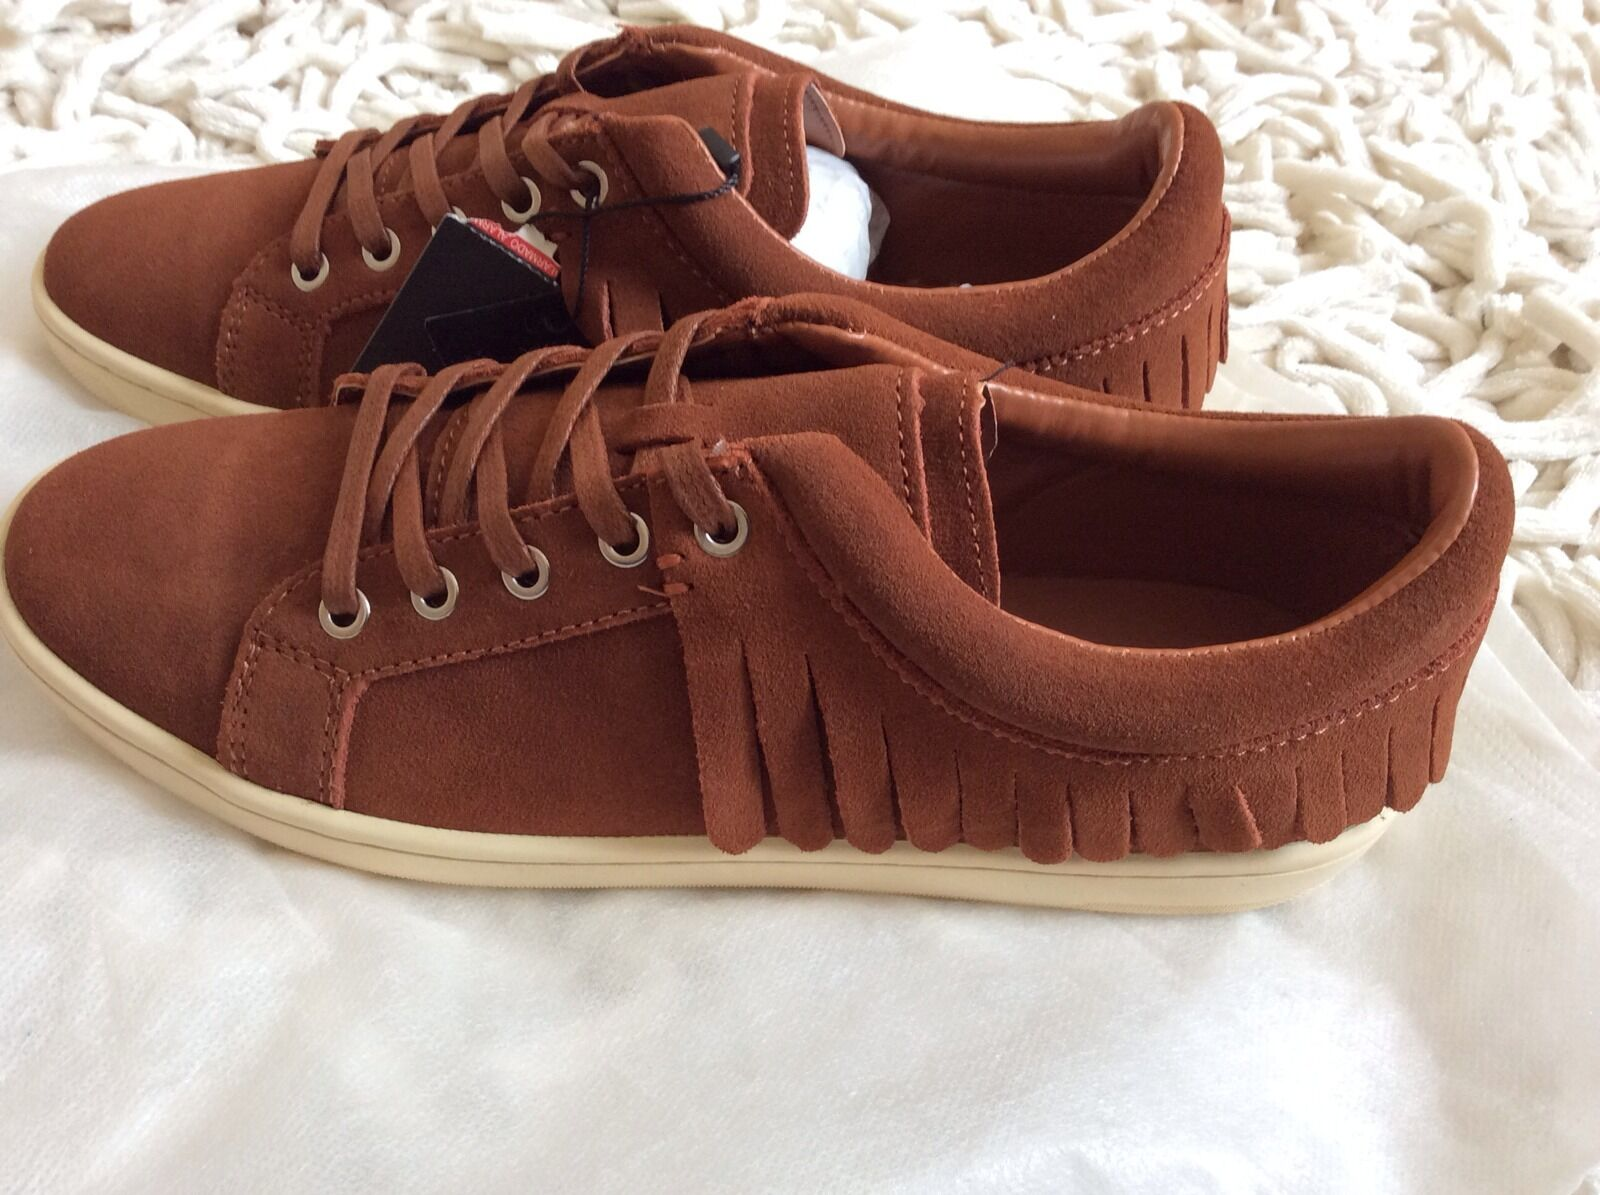 Zara Plimsole Women fringed Leather Plimsole Zara Shoes Size BNWT! Reduced 9af825